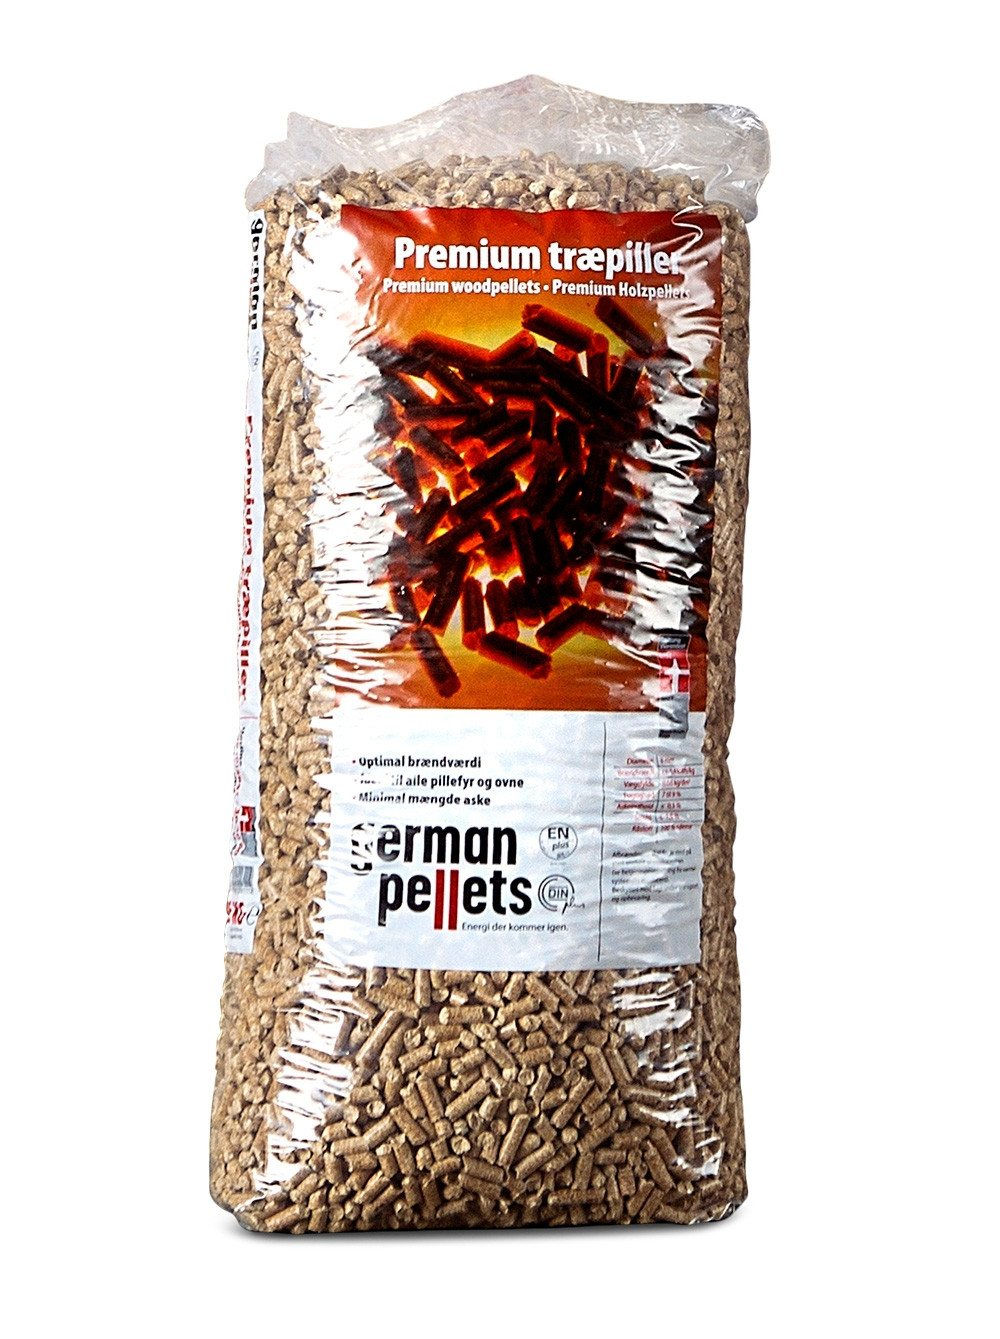 German Pellets - Premium træpiller i poser - 8 mm.